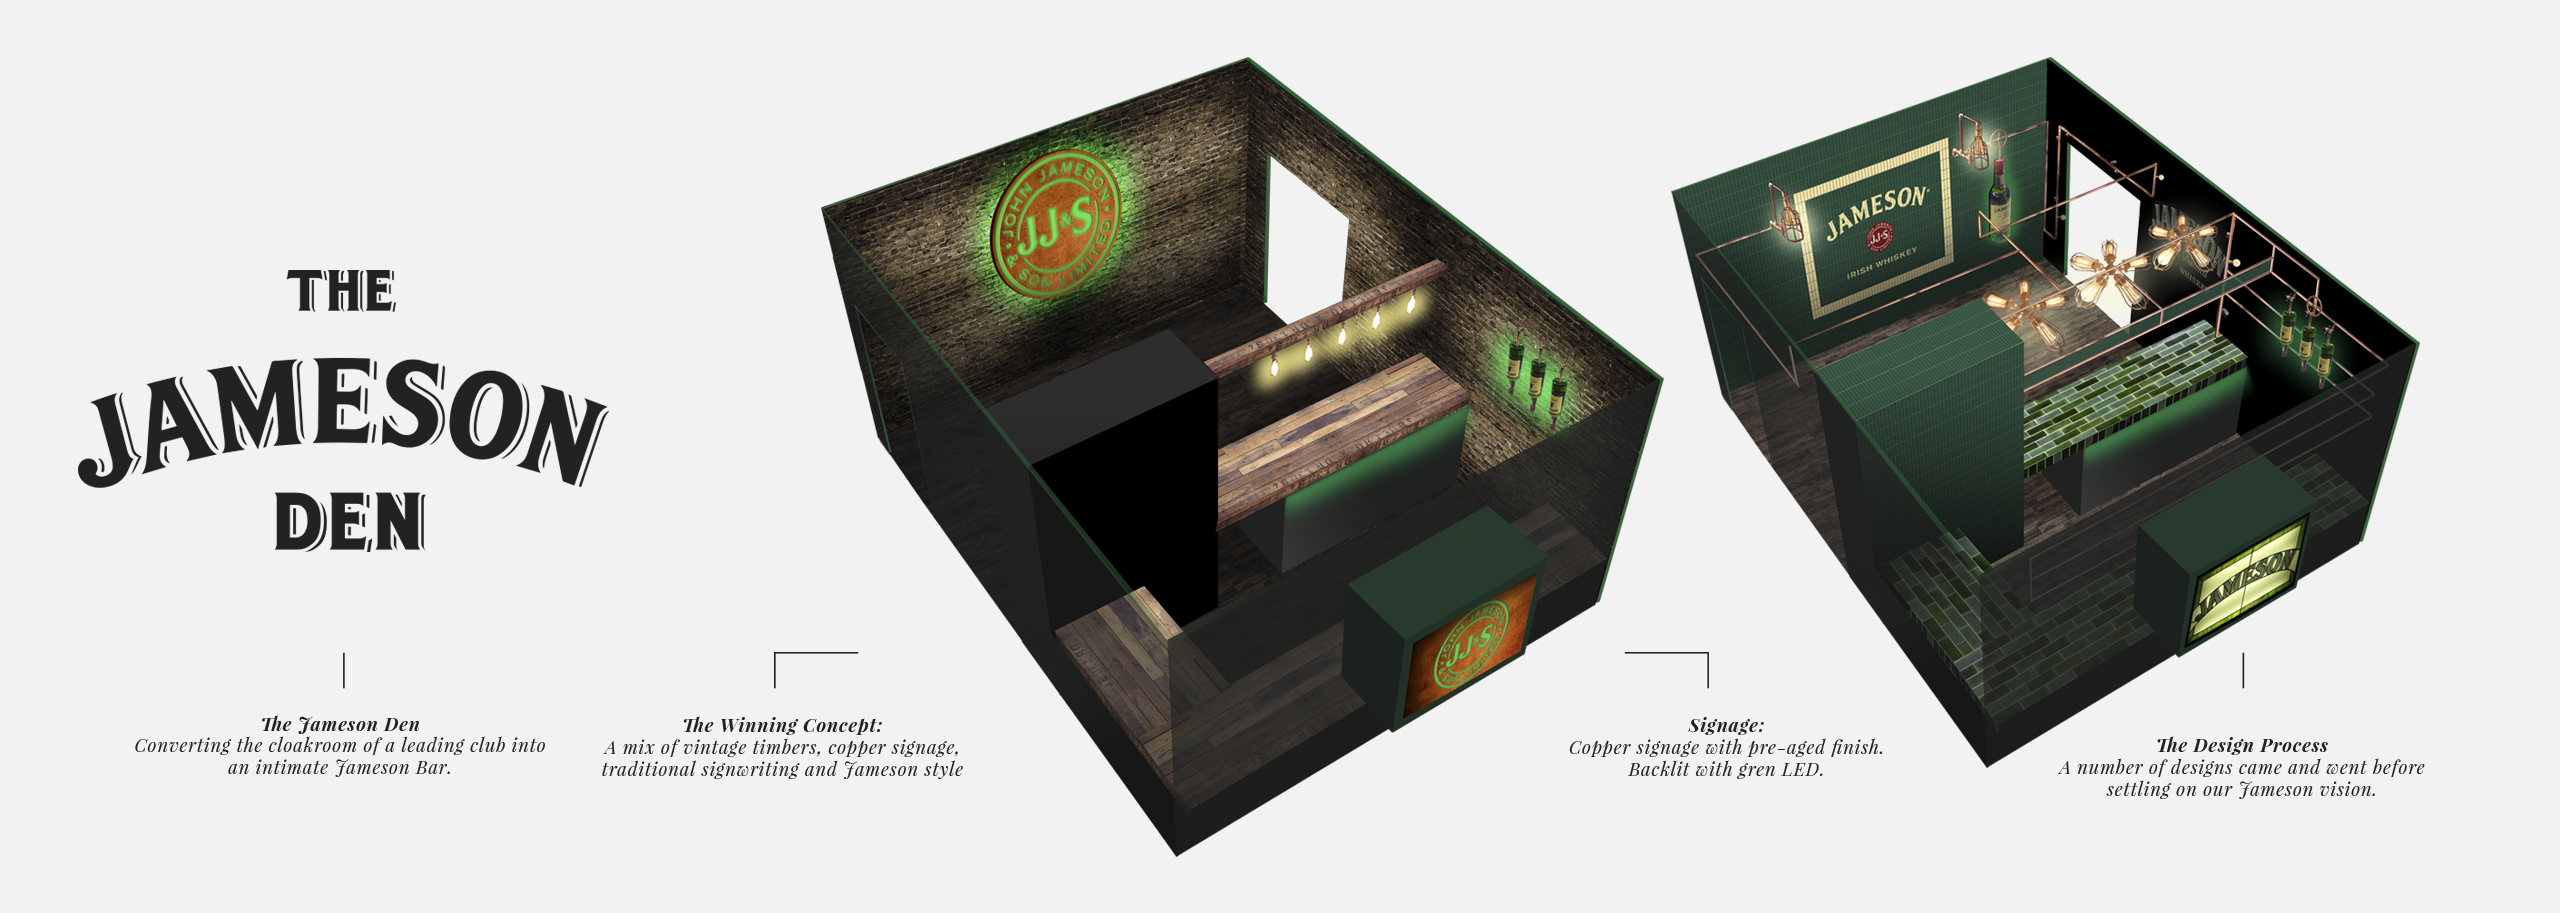 Jameson Whiskey Pop-up bar